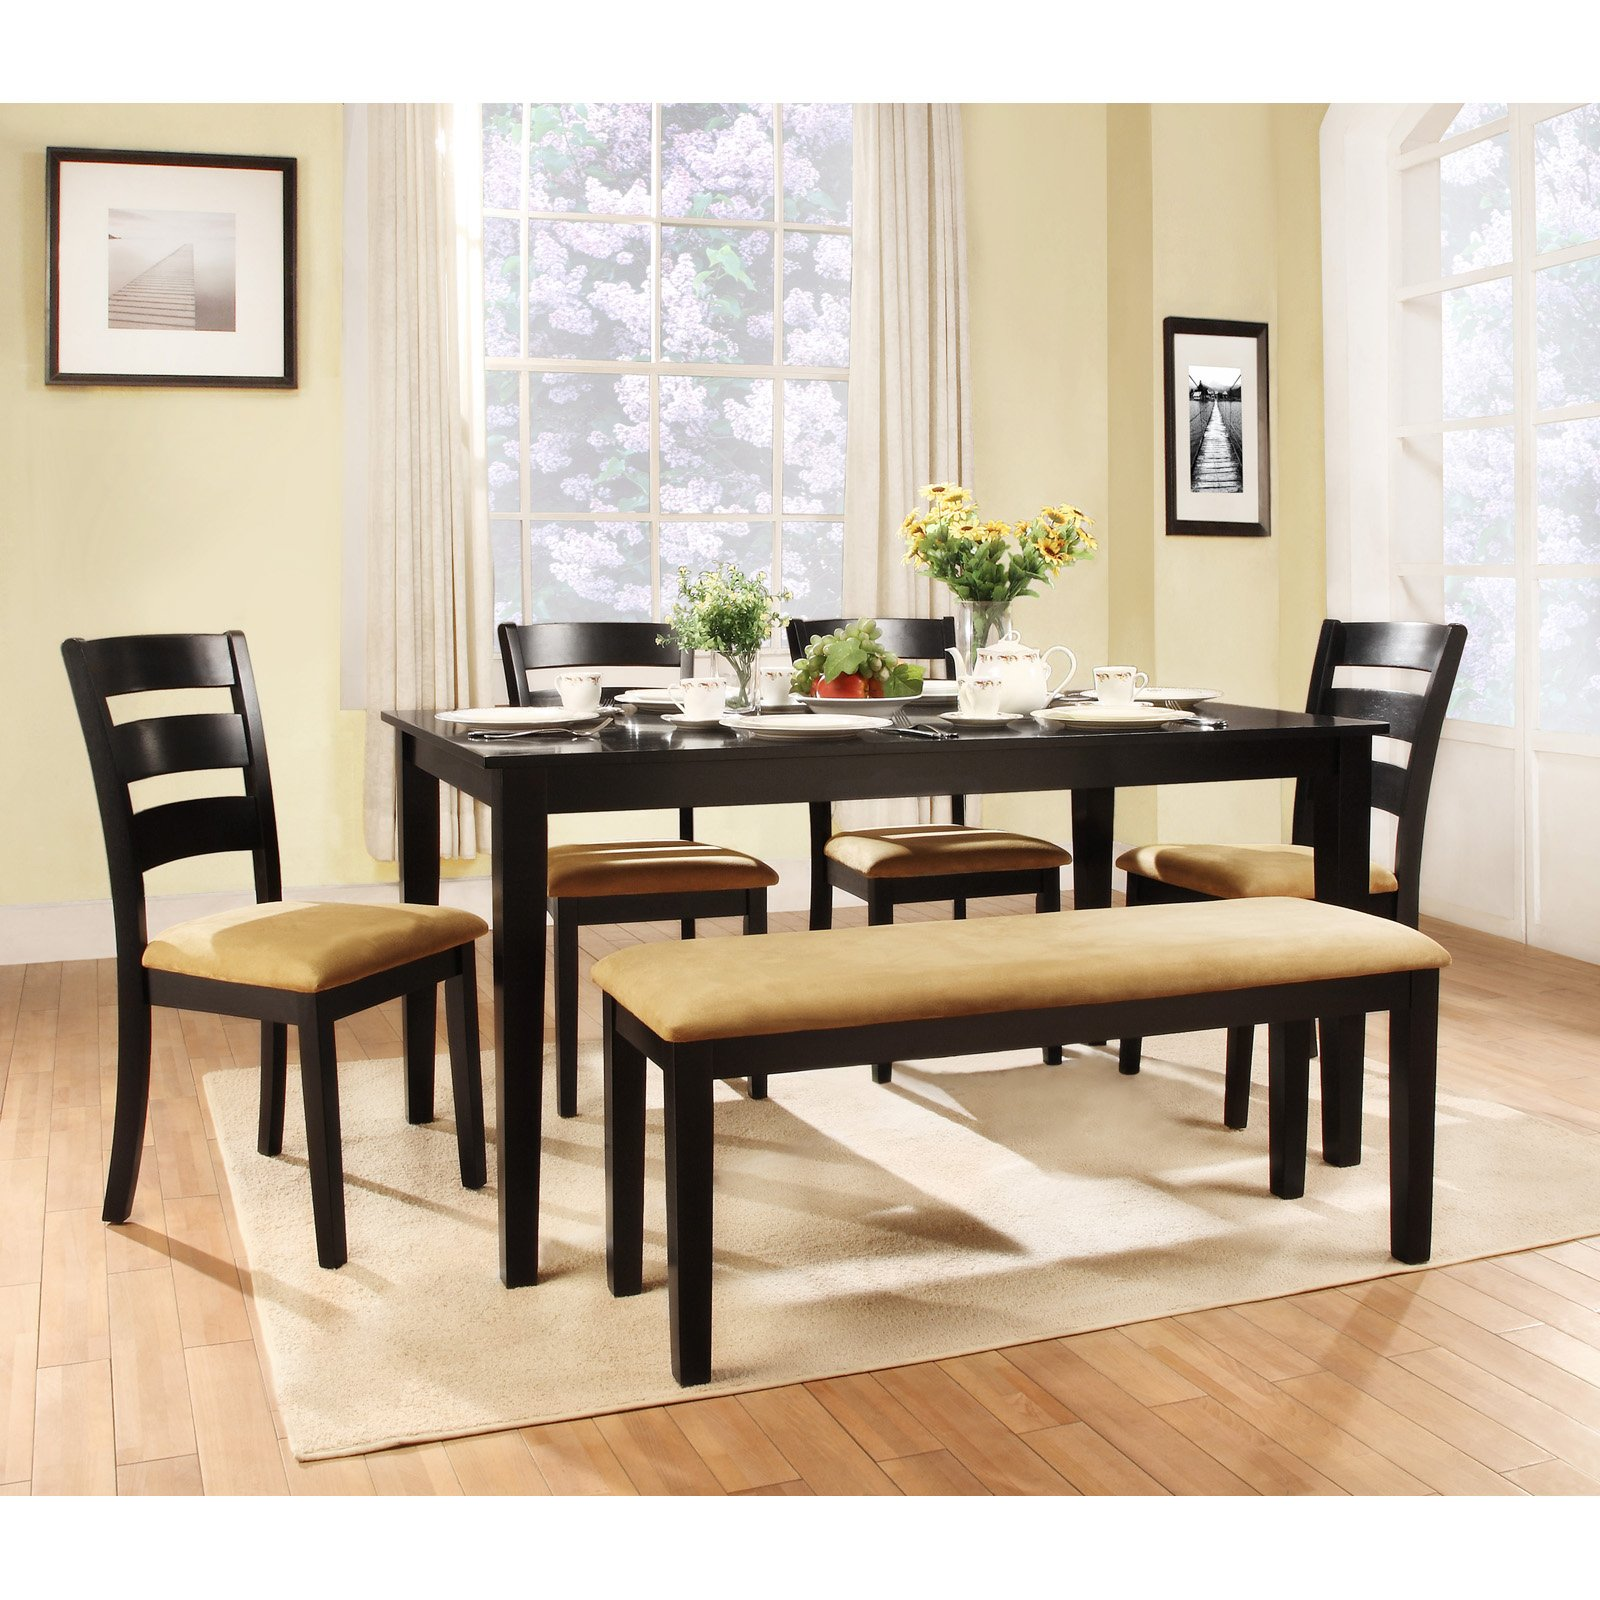 modern bench style dining table set ideas homesfeed. Black Bedroom Furniture Sets. Home Design Ideas